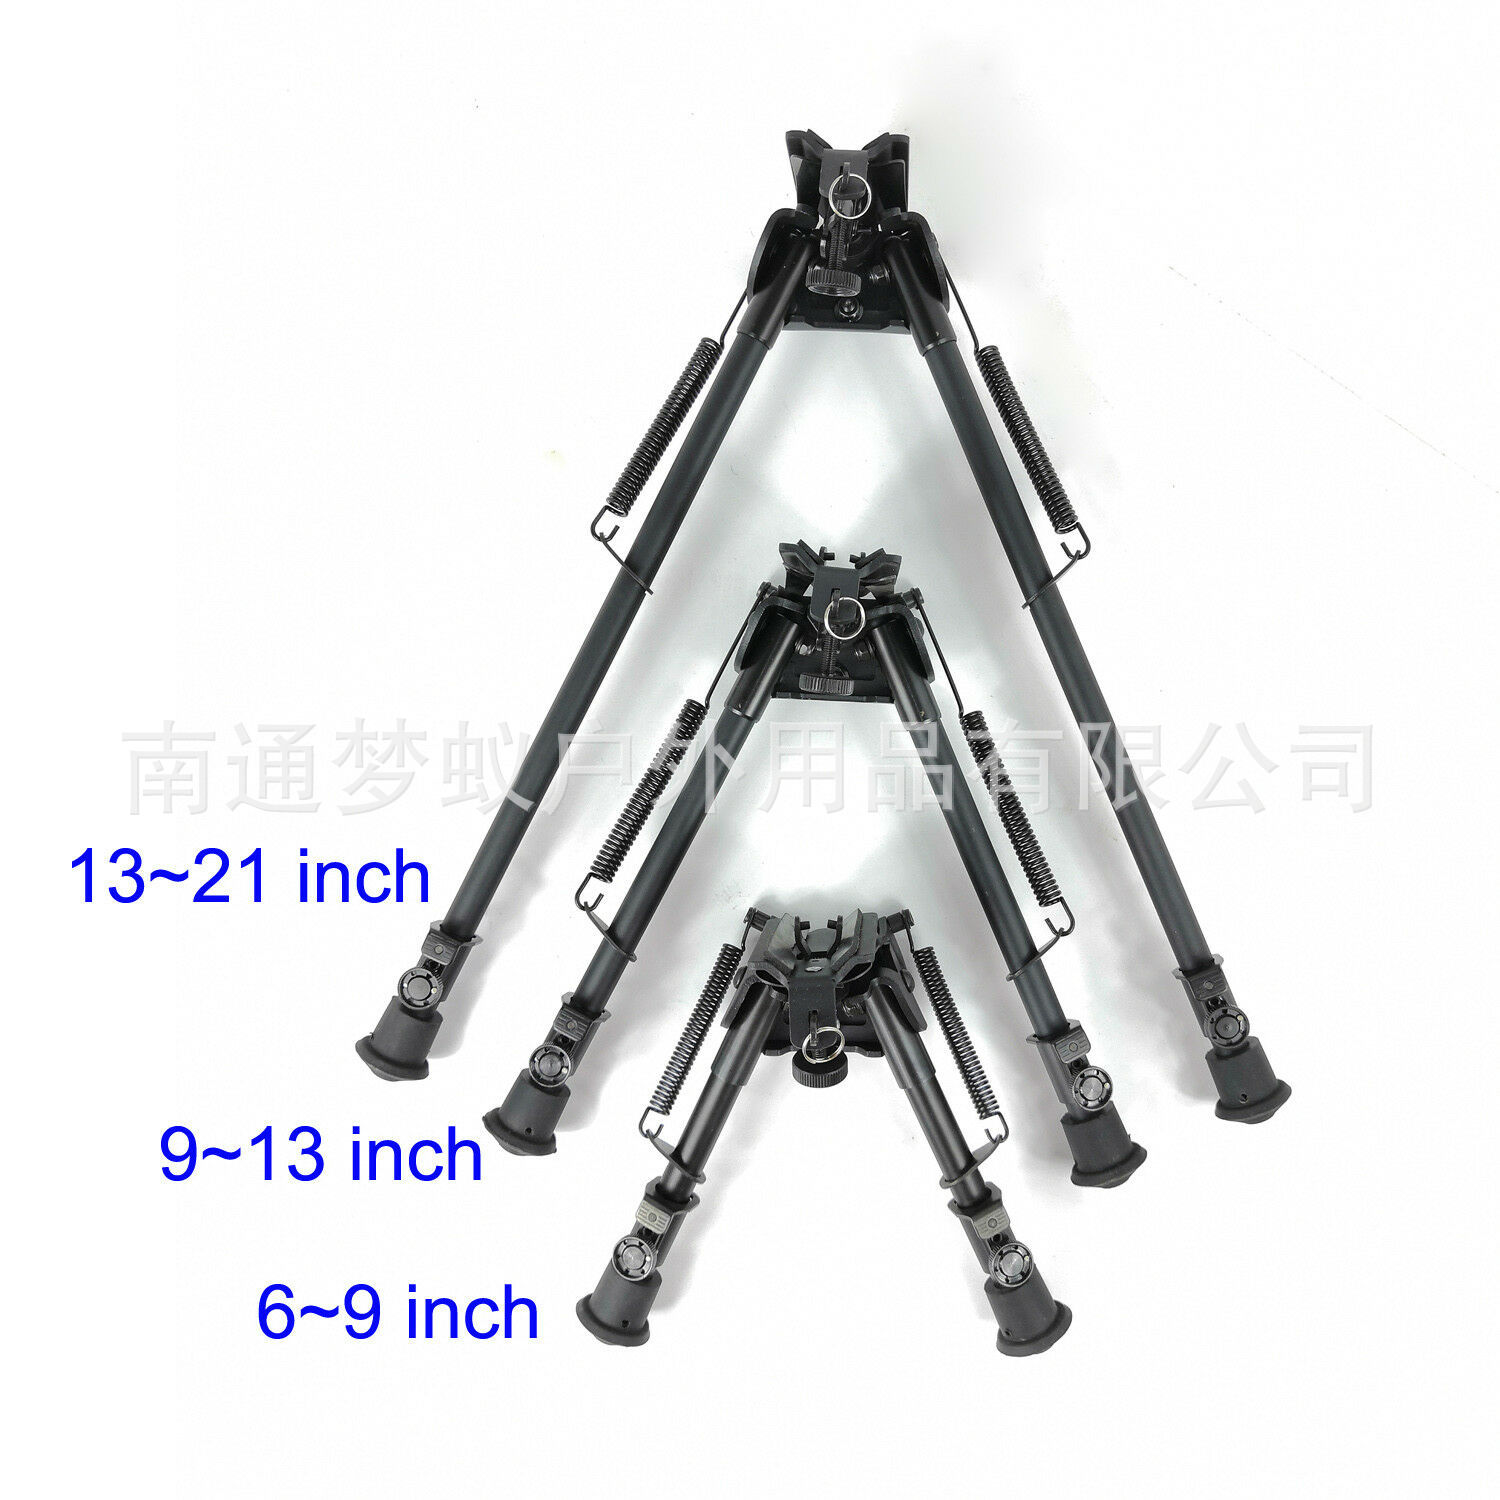 13-Inch-21-Inch Butterfly Holder 13-Inch Head Adapter Bipod Tactical Bipod